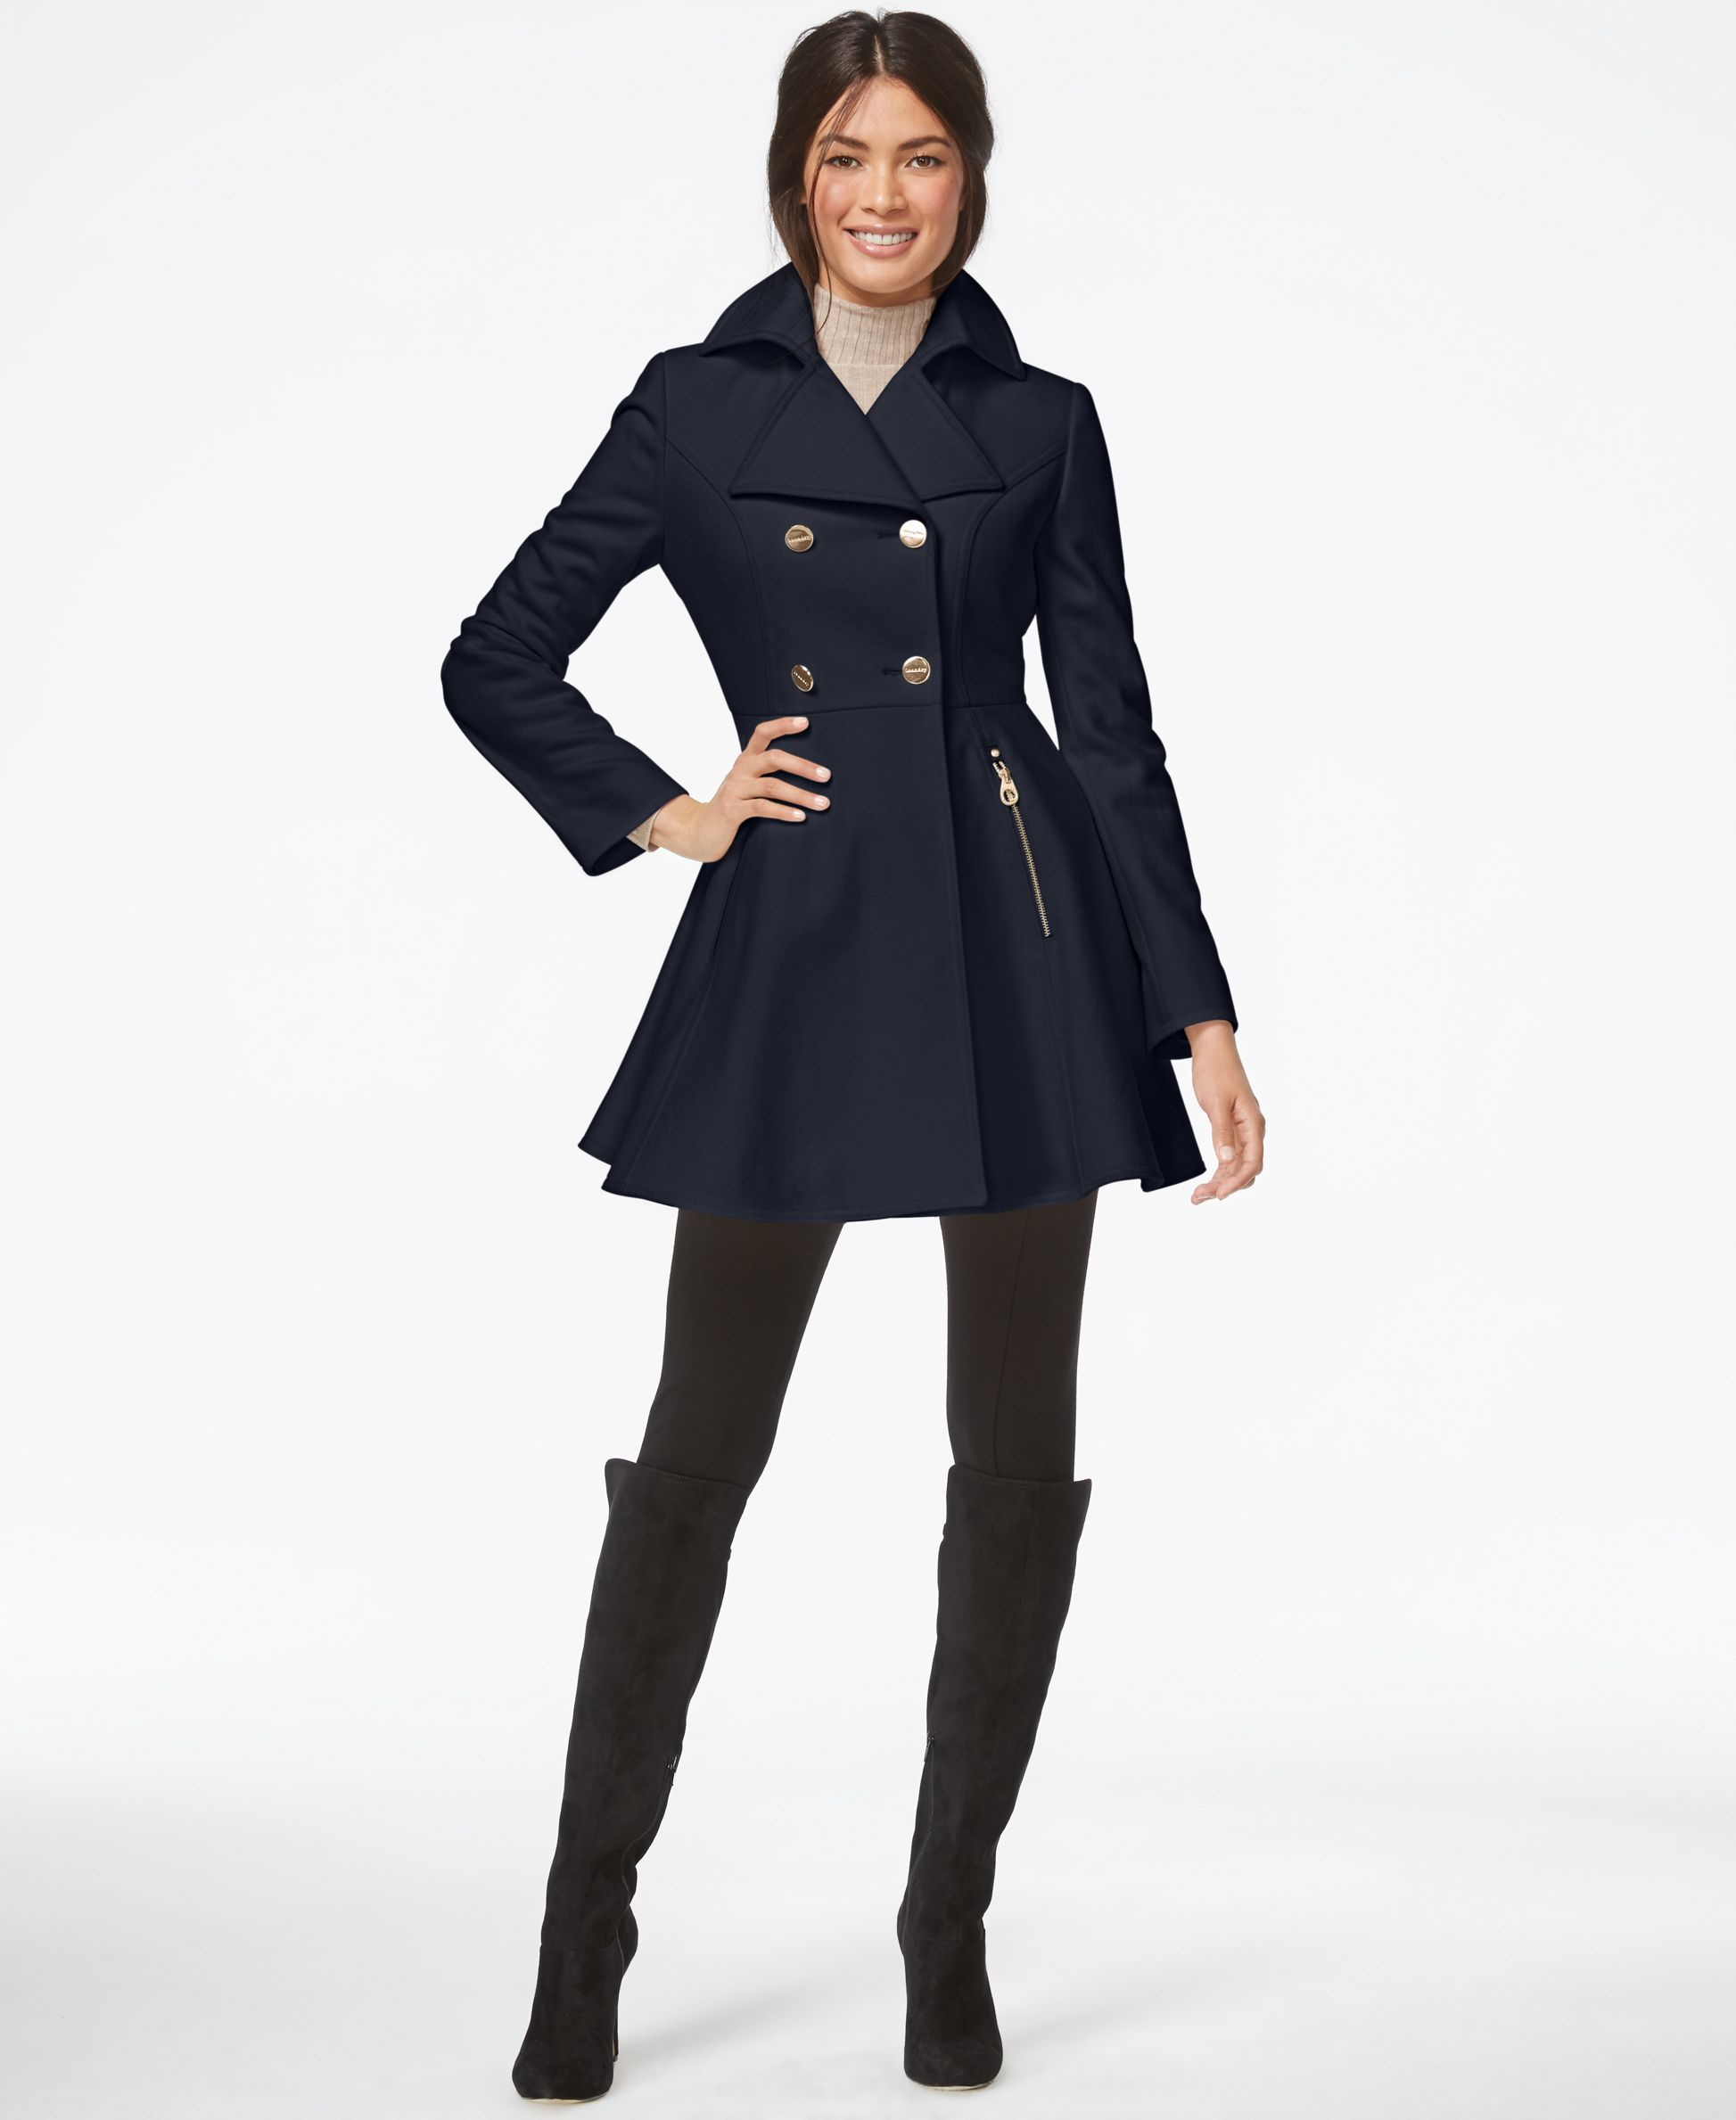 bd17c68ed FINALLY the Perfect Peacoat- Navy Small Laundry by Shelli Segal  Double-Breasted Flared Peacoat - Coats - Women - Macy's